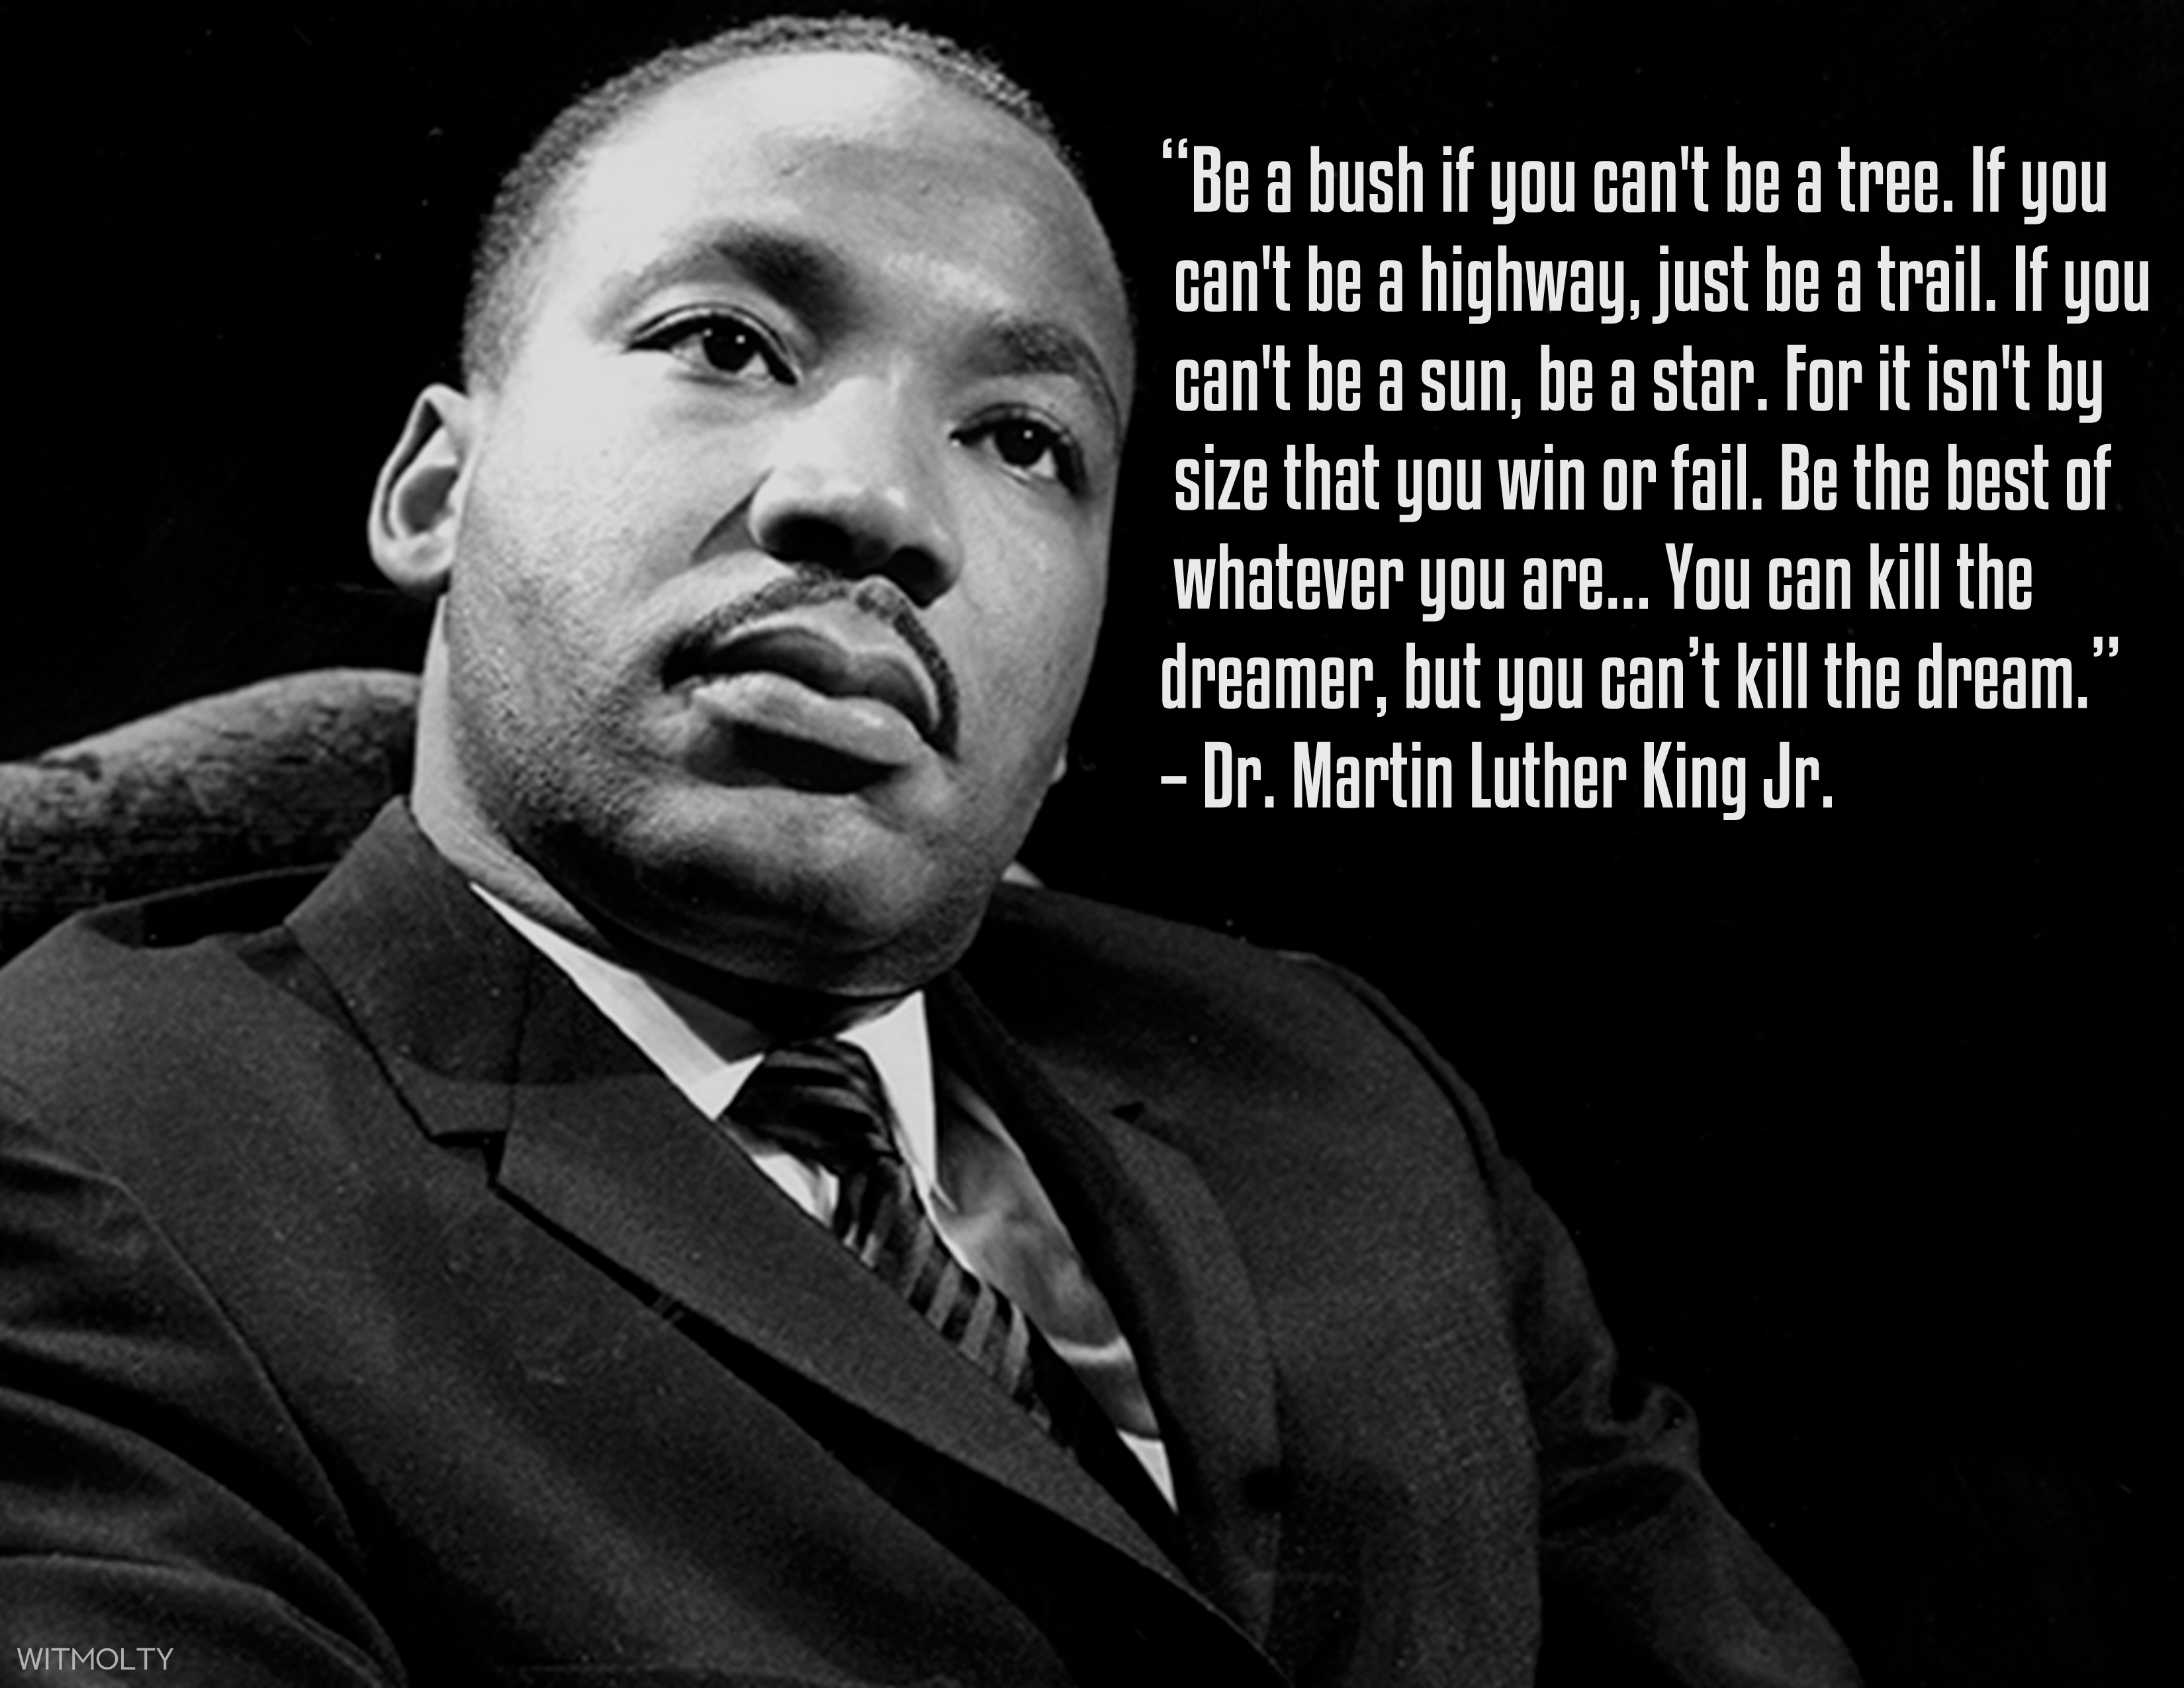 """""""Be a bush if you can't be a tree. If you can't be a highway, just be a trail. If you can't be a sun, be a star. For it isn't by size that you win or fail. Be the best of whatever you are. You can kill the dreamer, but you can't kill the dream."""" – Martin Luther King. Black History Month [3300×2550]"""